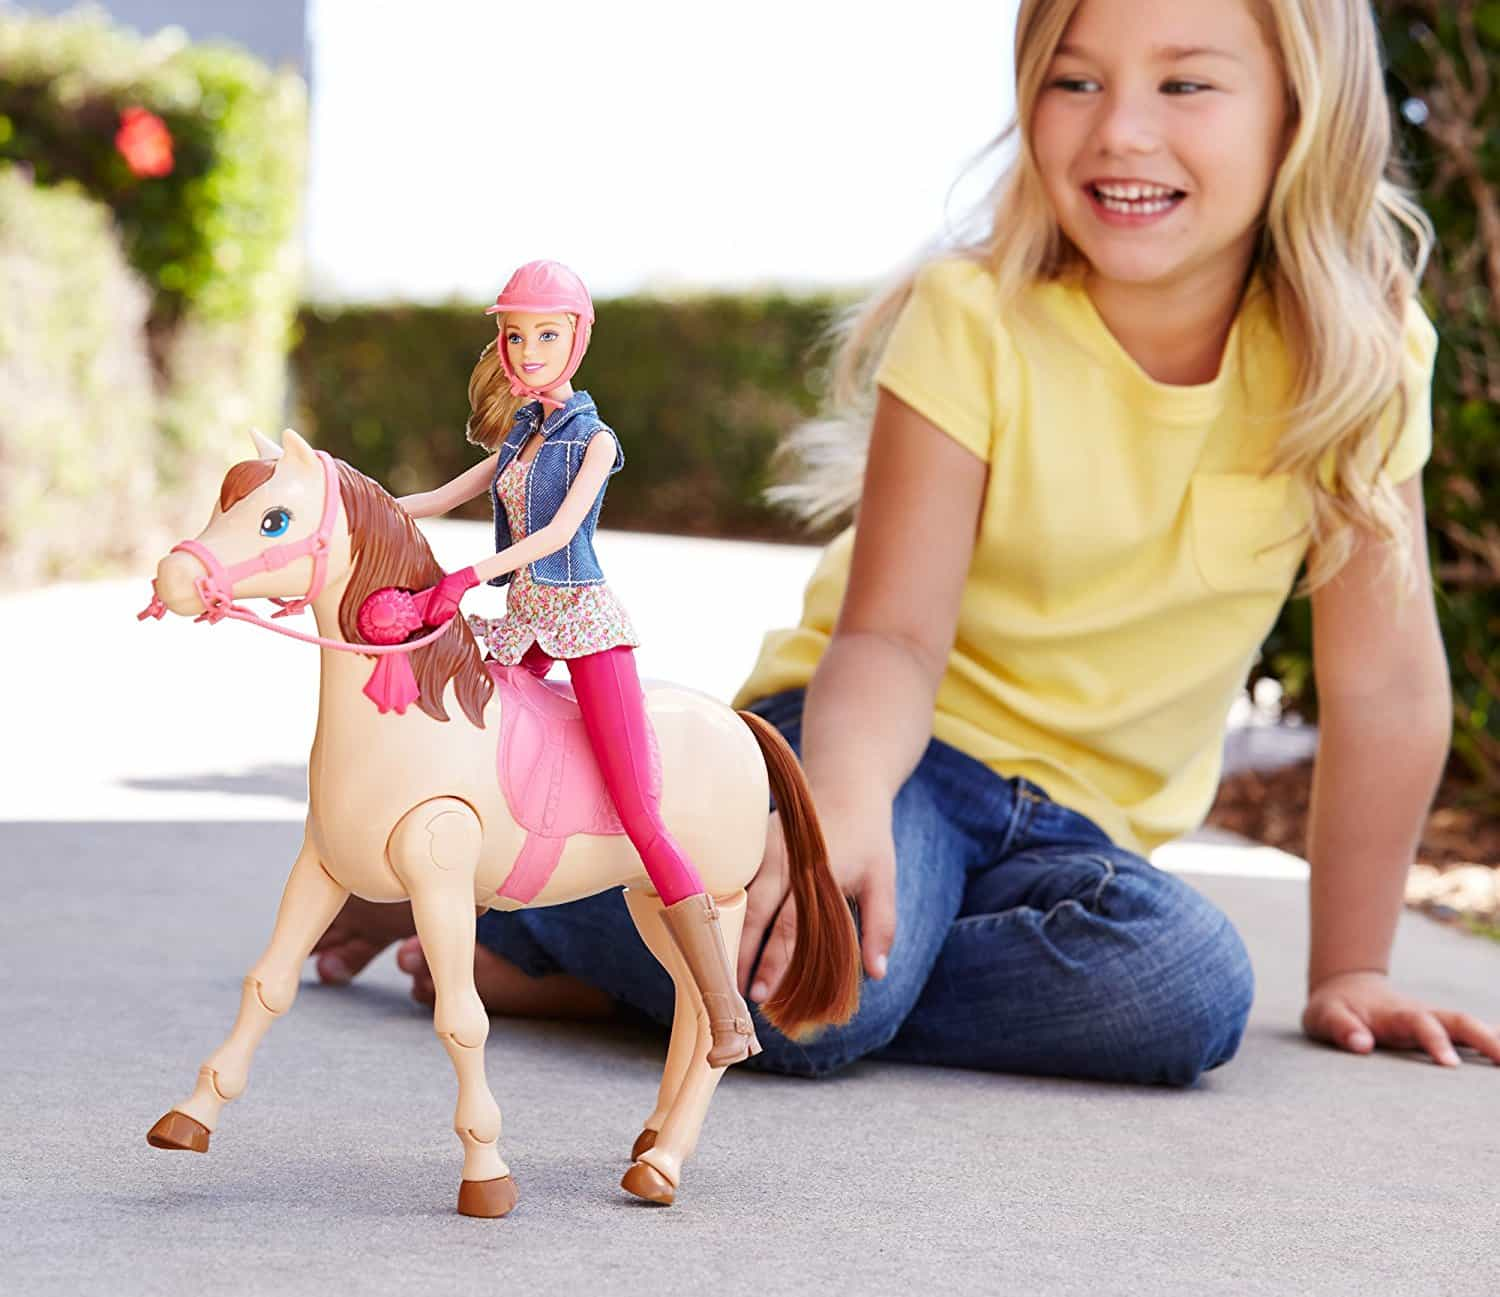 ca0f0bfd7105 Barbie Saddle  N Ride Horse Barbie Doll Edition Review - The Most ...